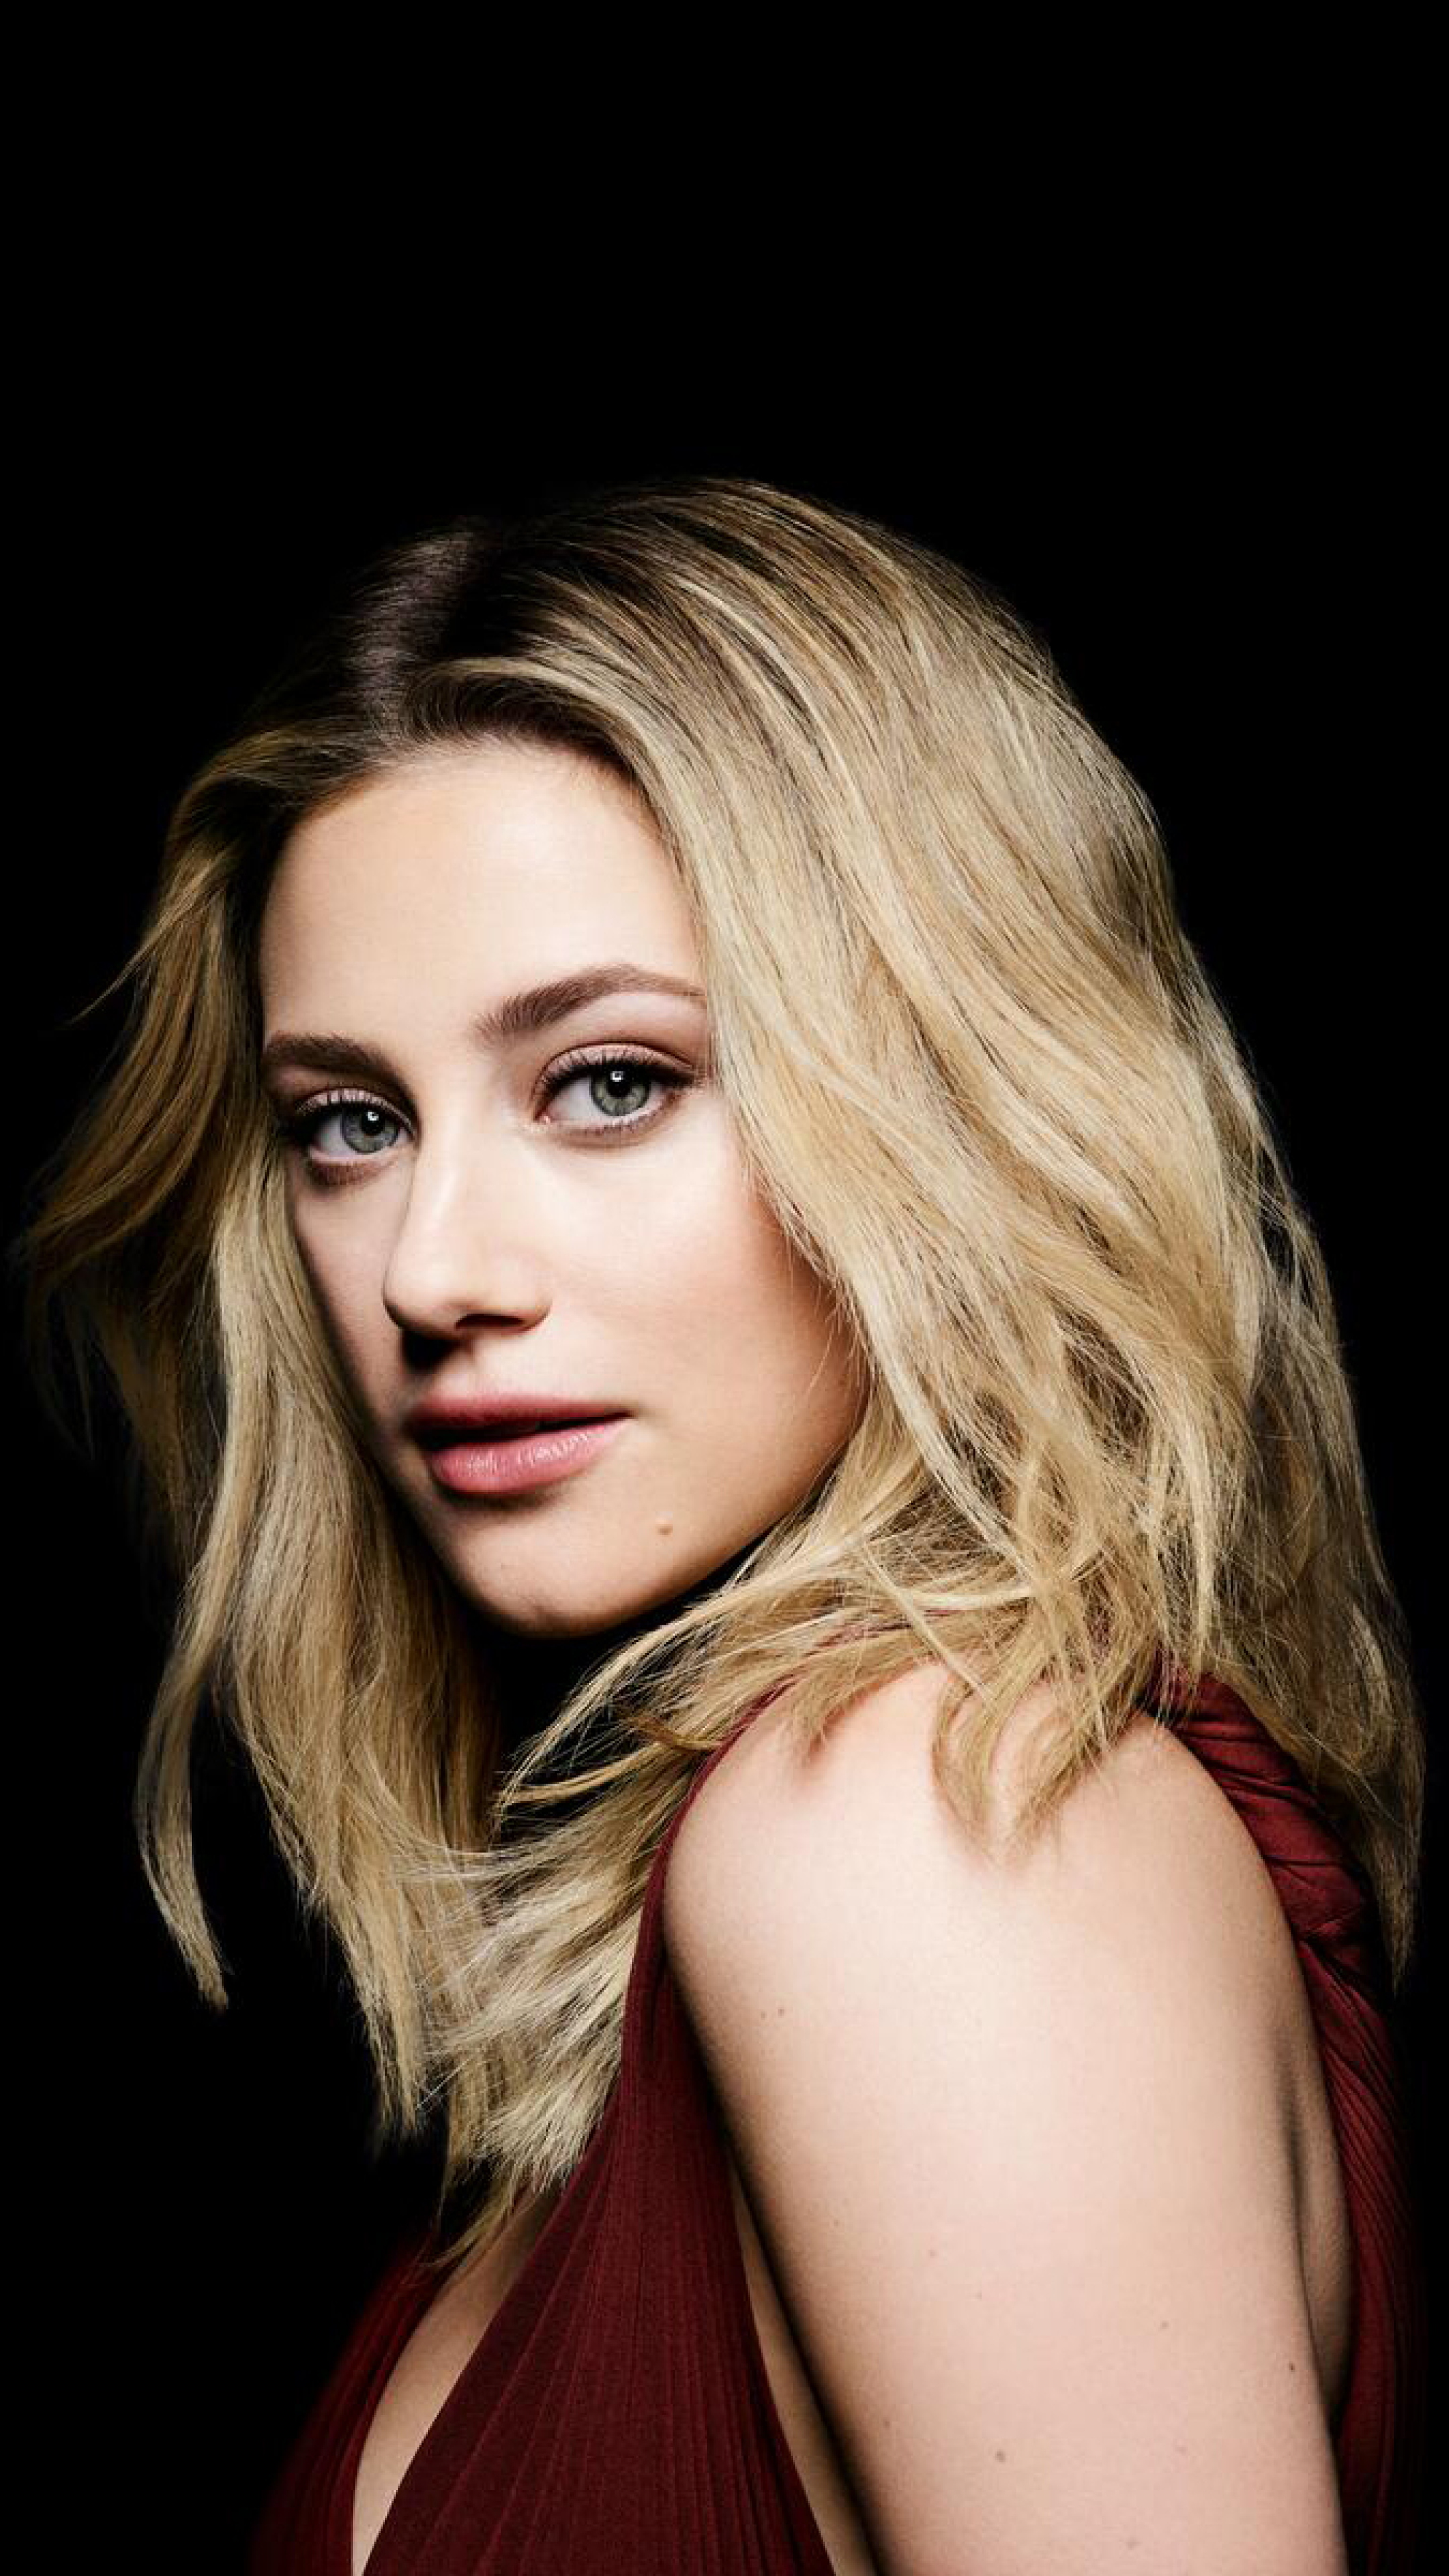 Lili Reinhart New Actress 2021 Wallpaper in 2160x3840 Resolution